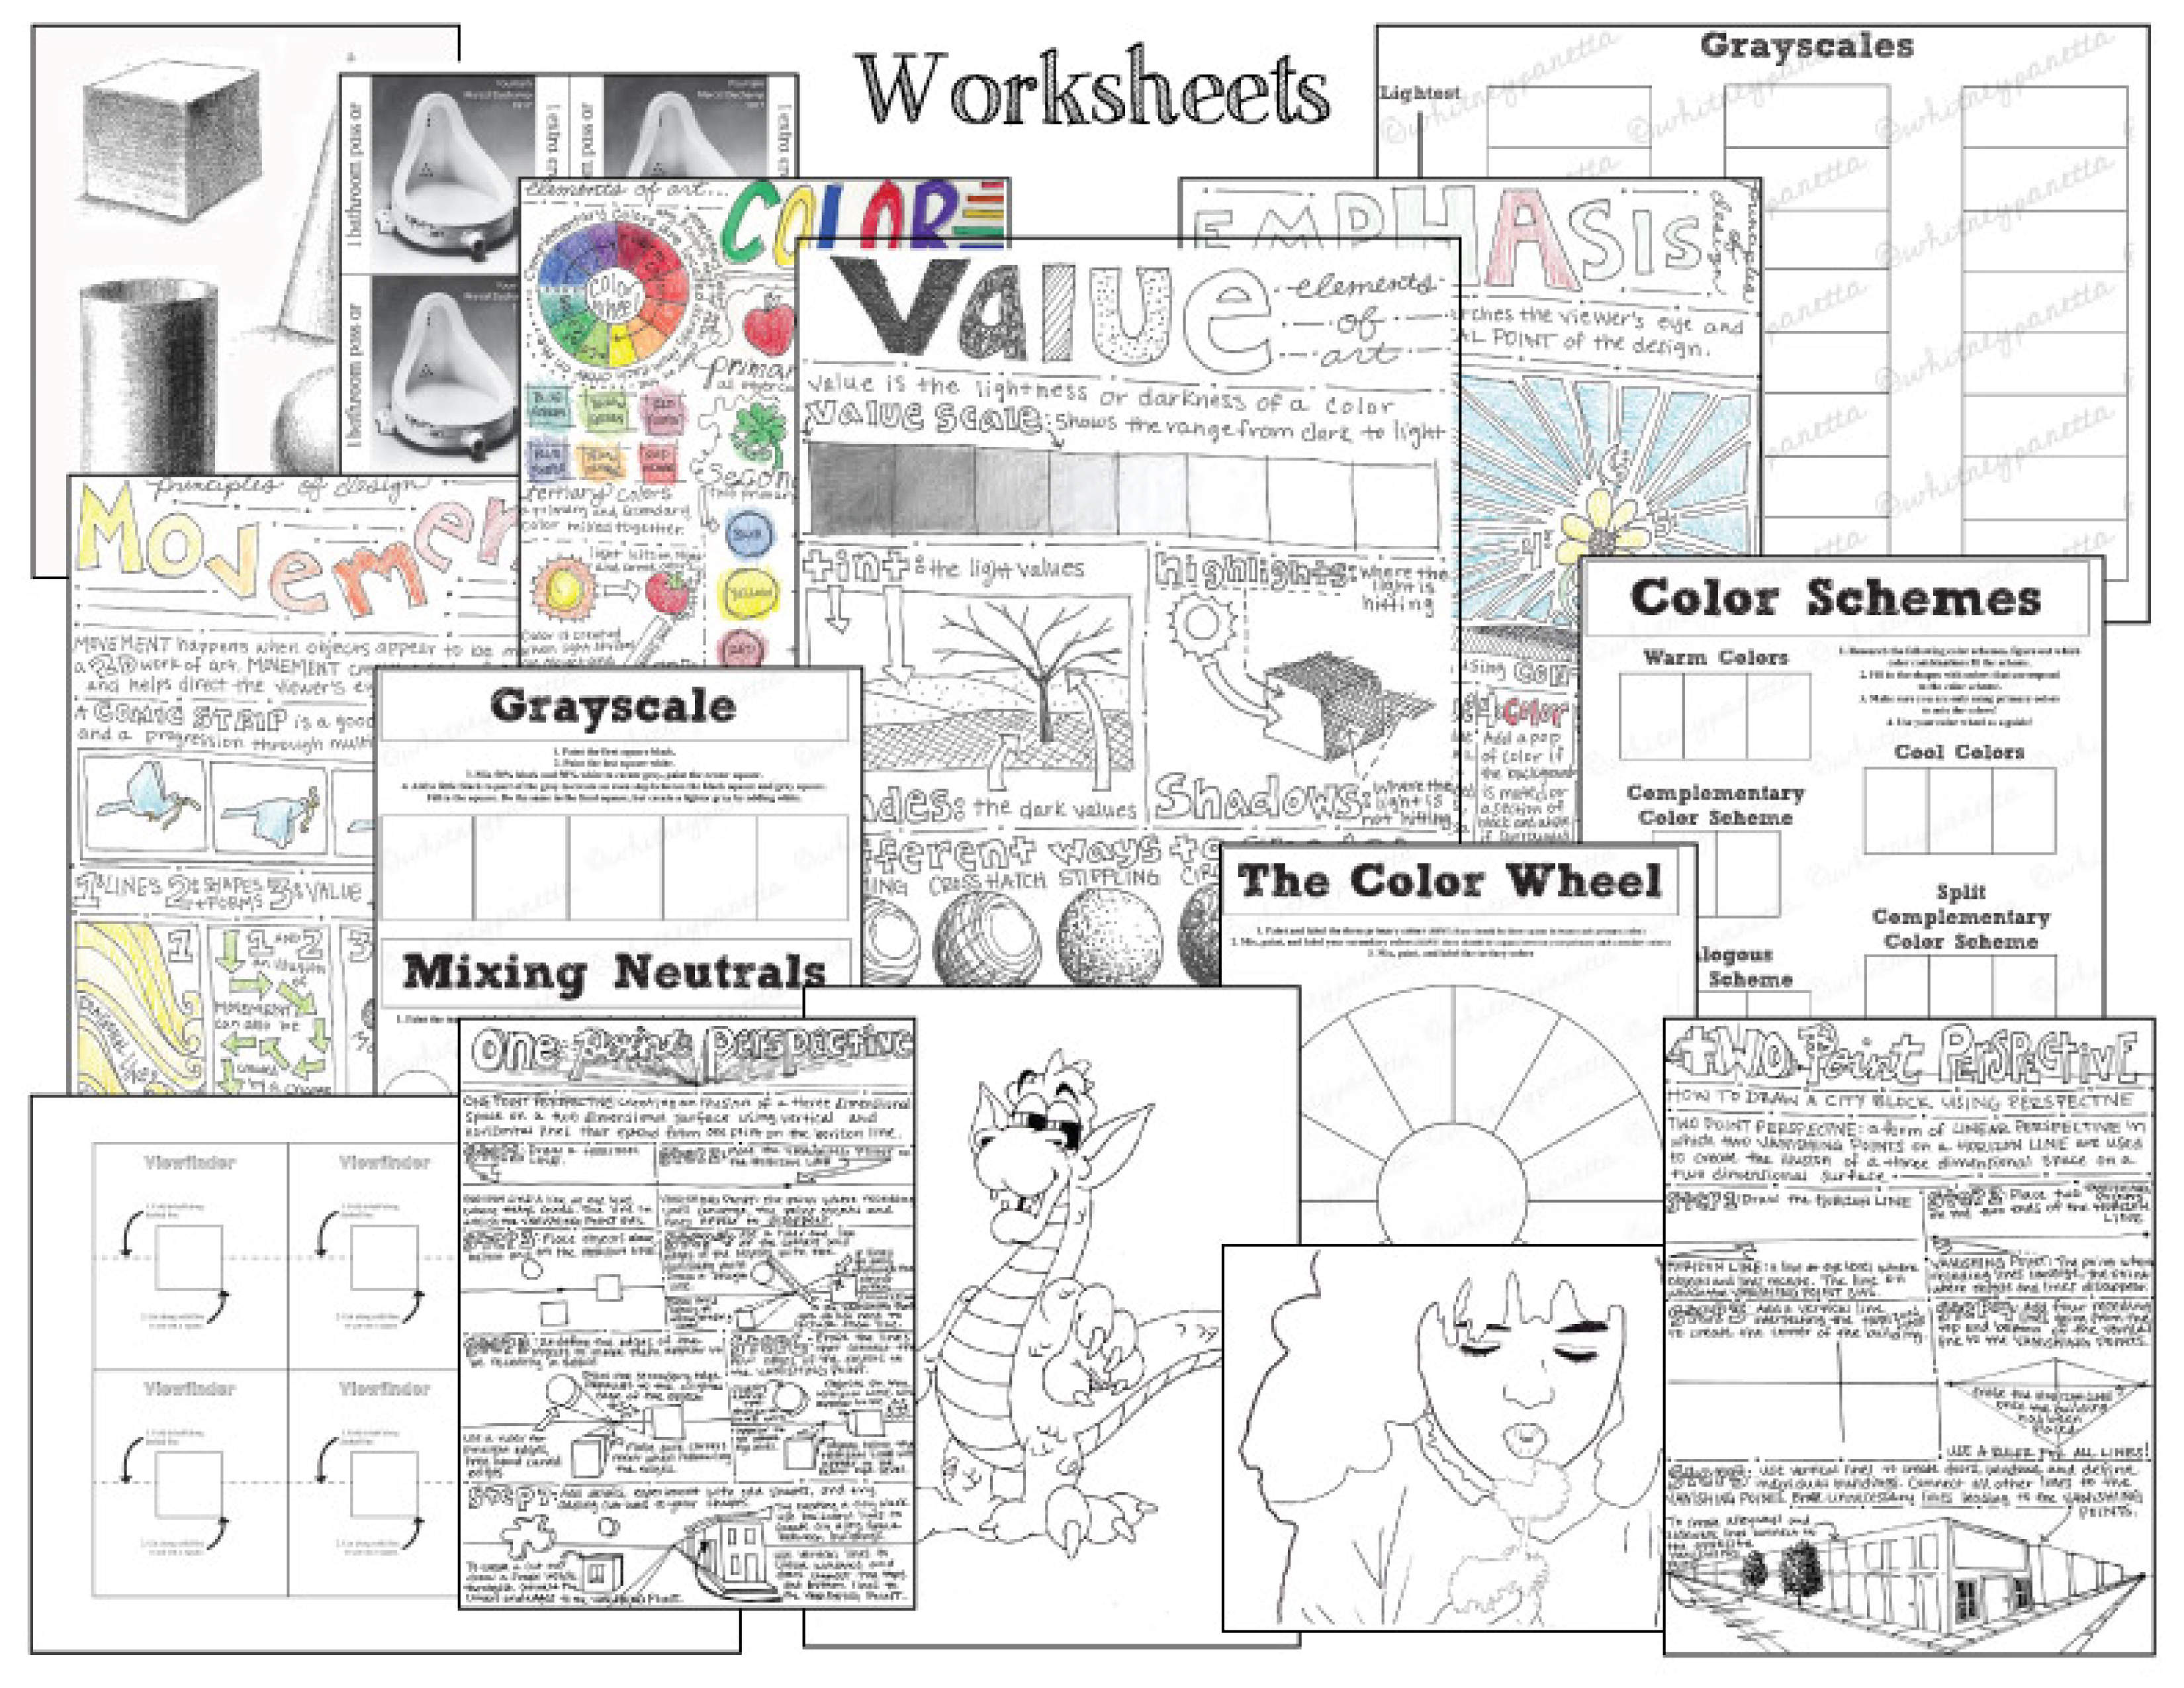 42 Worksheets Includes Elements Of Art Principles Design Visual Journal Drawing Color Theory Perspective Contour Line And Many More